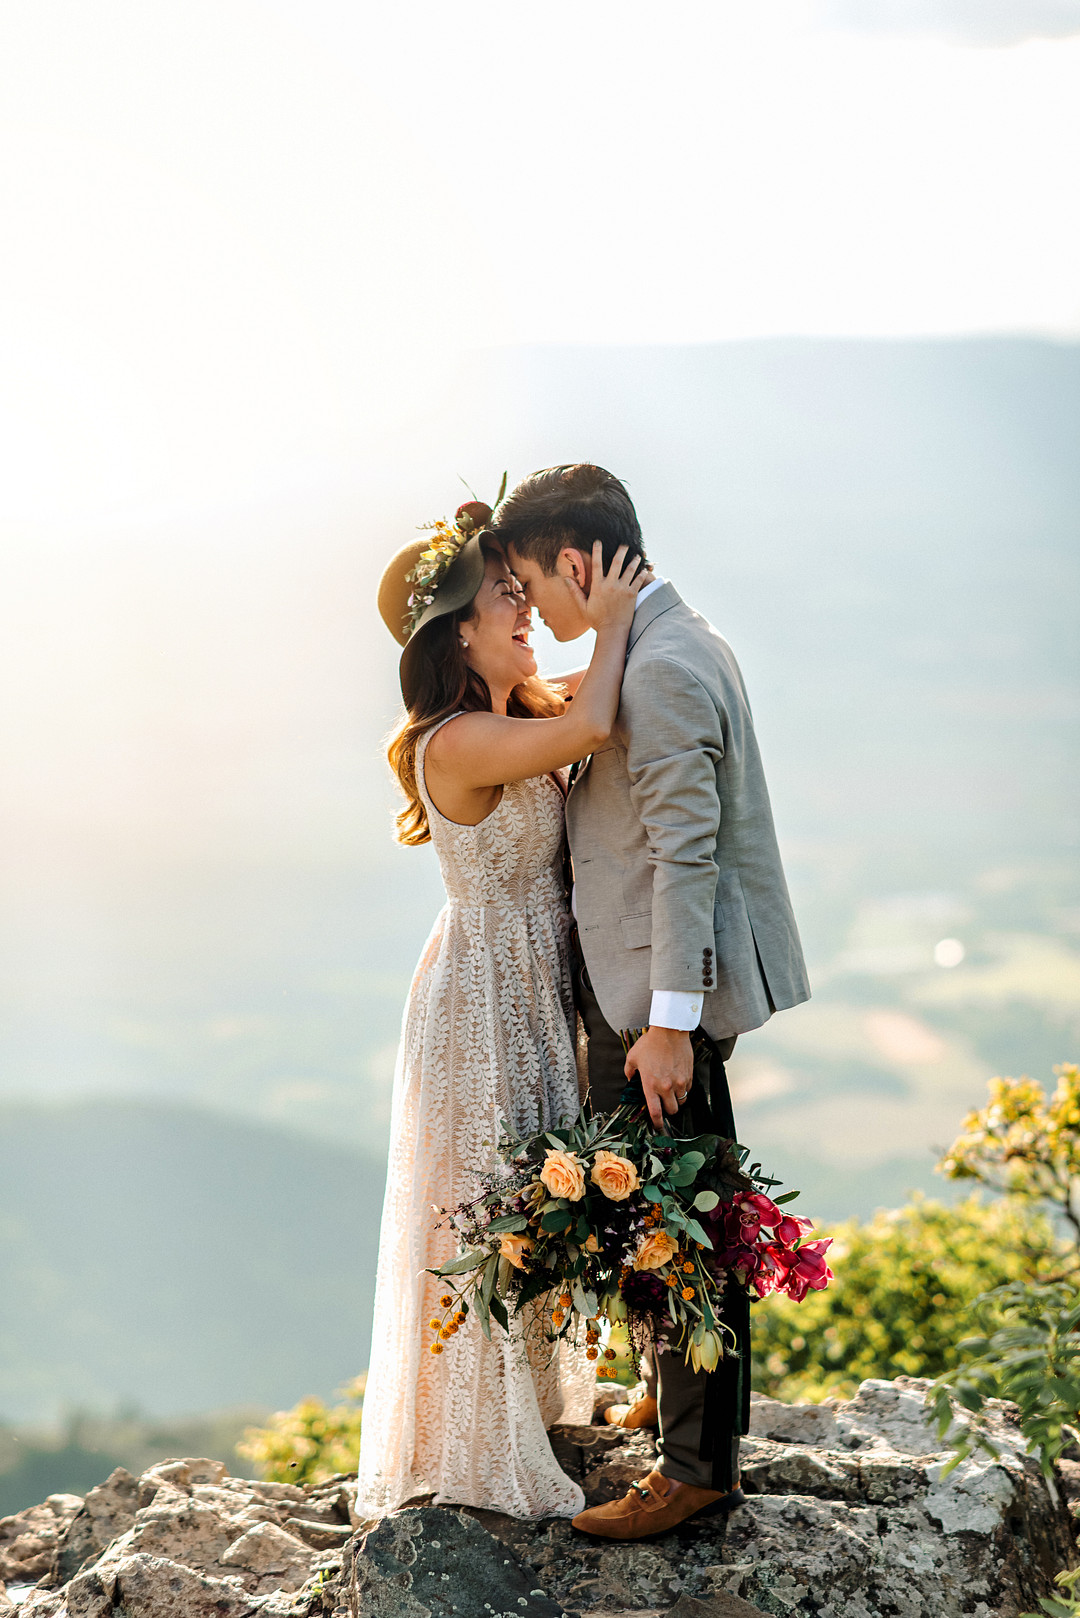 Boho Mountain Elopement in Shenandoah National Park_1001 Angles Photography_Shenandoah National Park Adventure Elopement-131_low